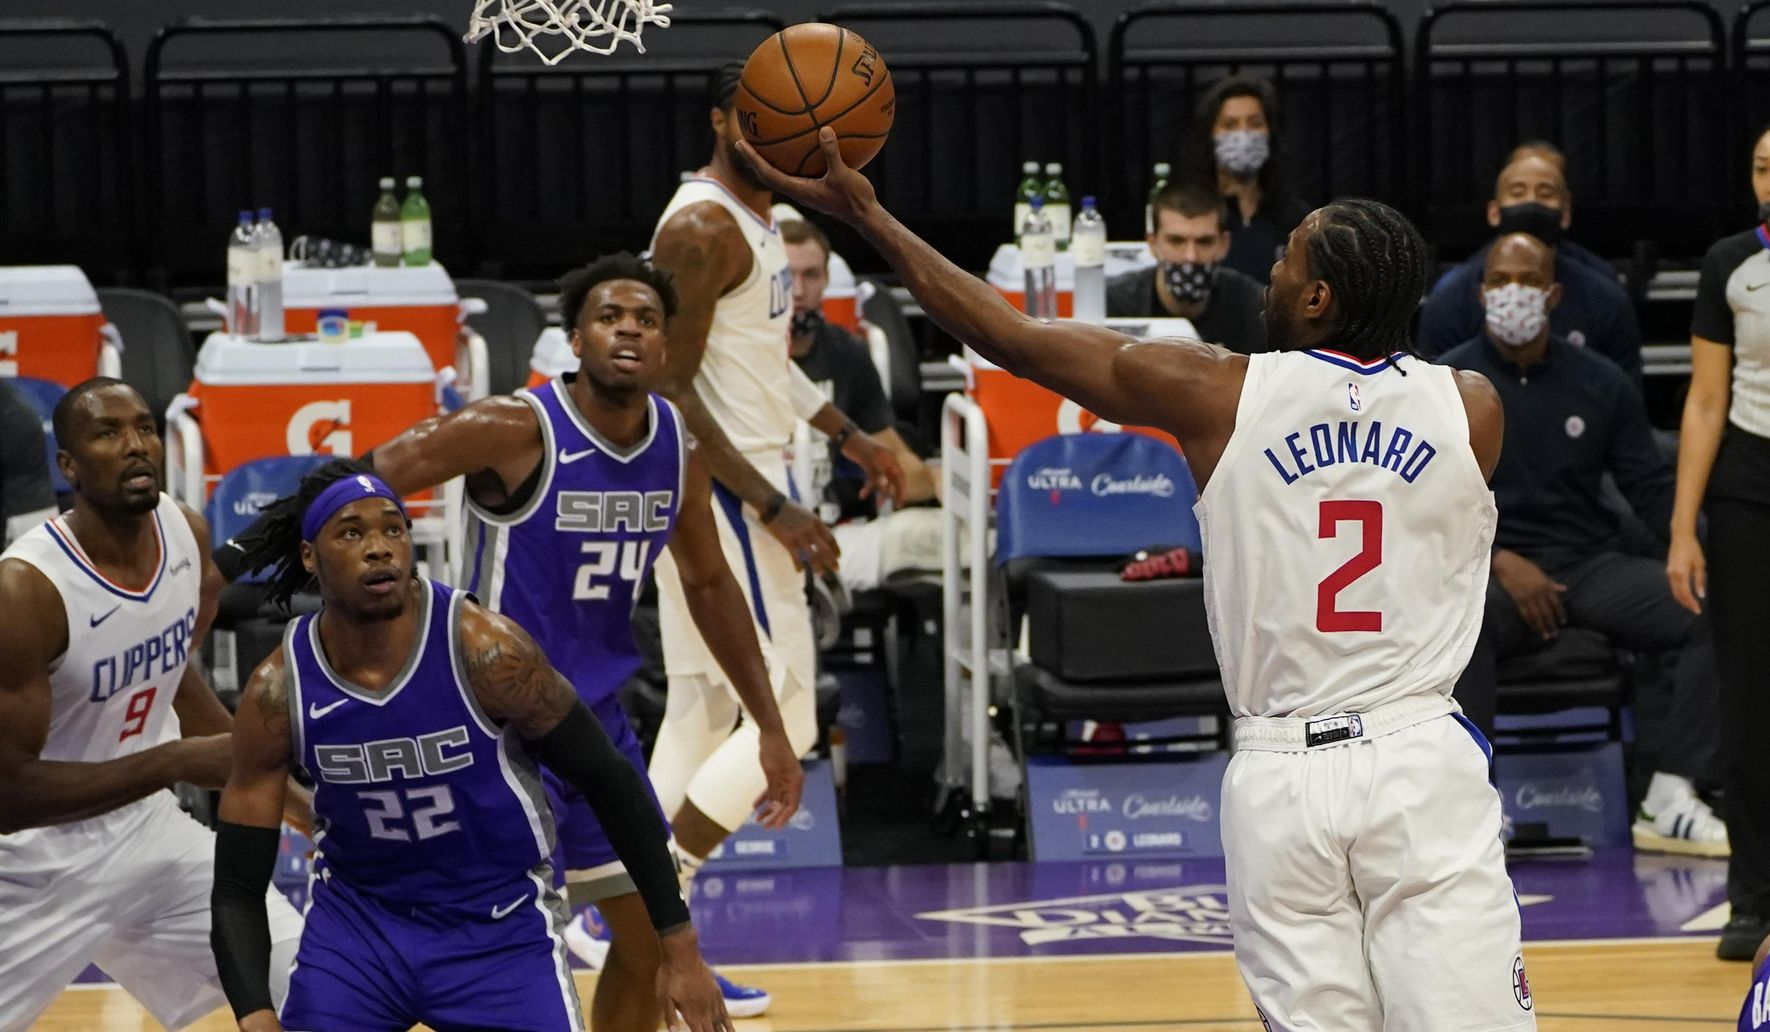 Clippers_kings_basketball_52212_c0-143-3428-2141_s1770x1032